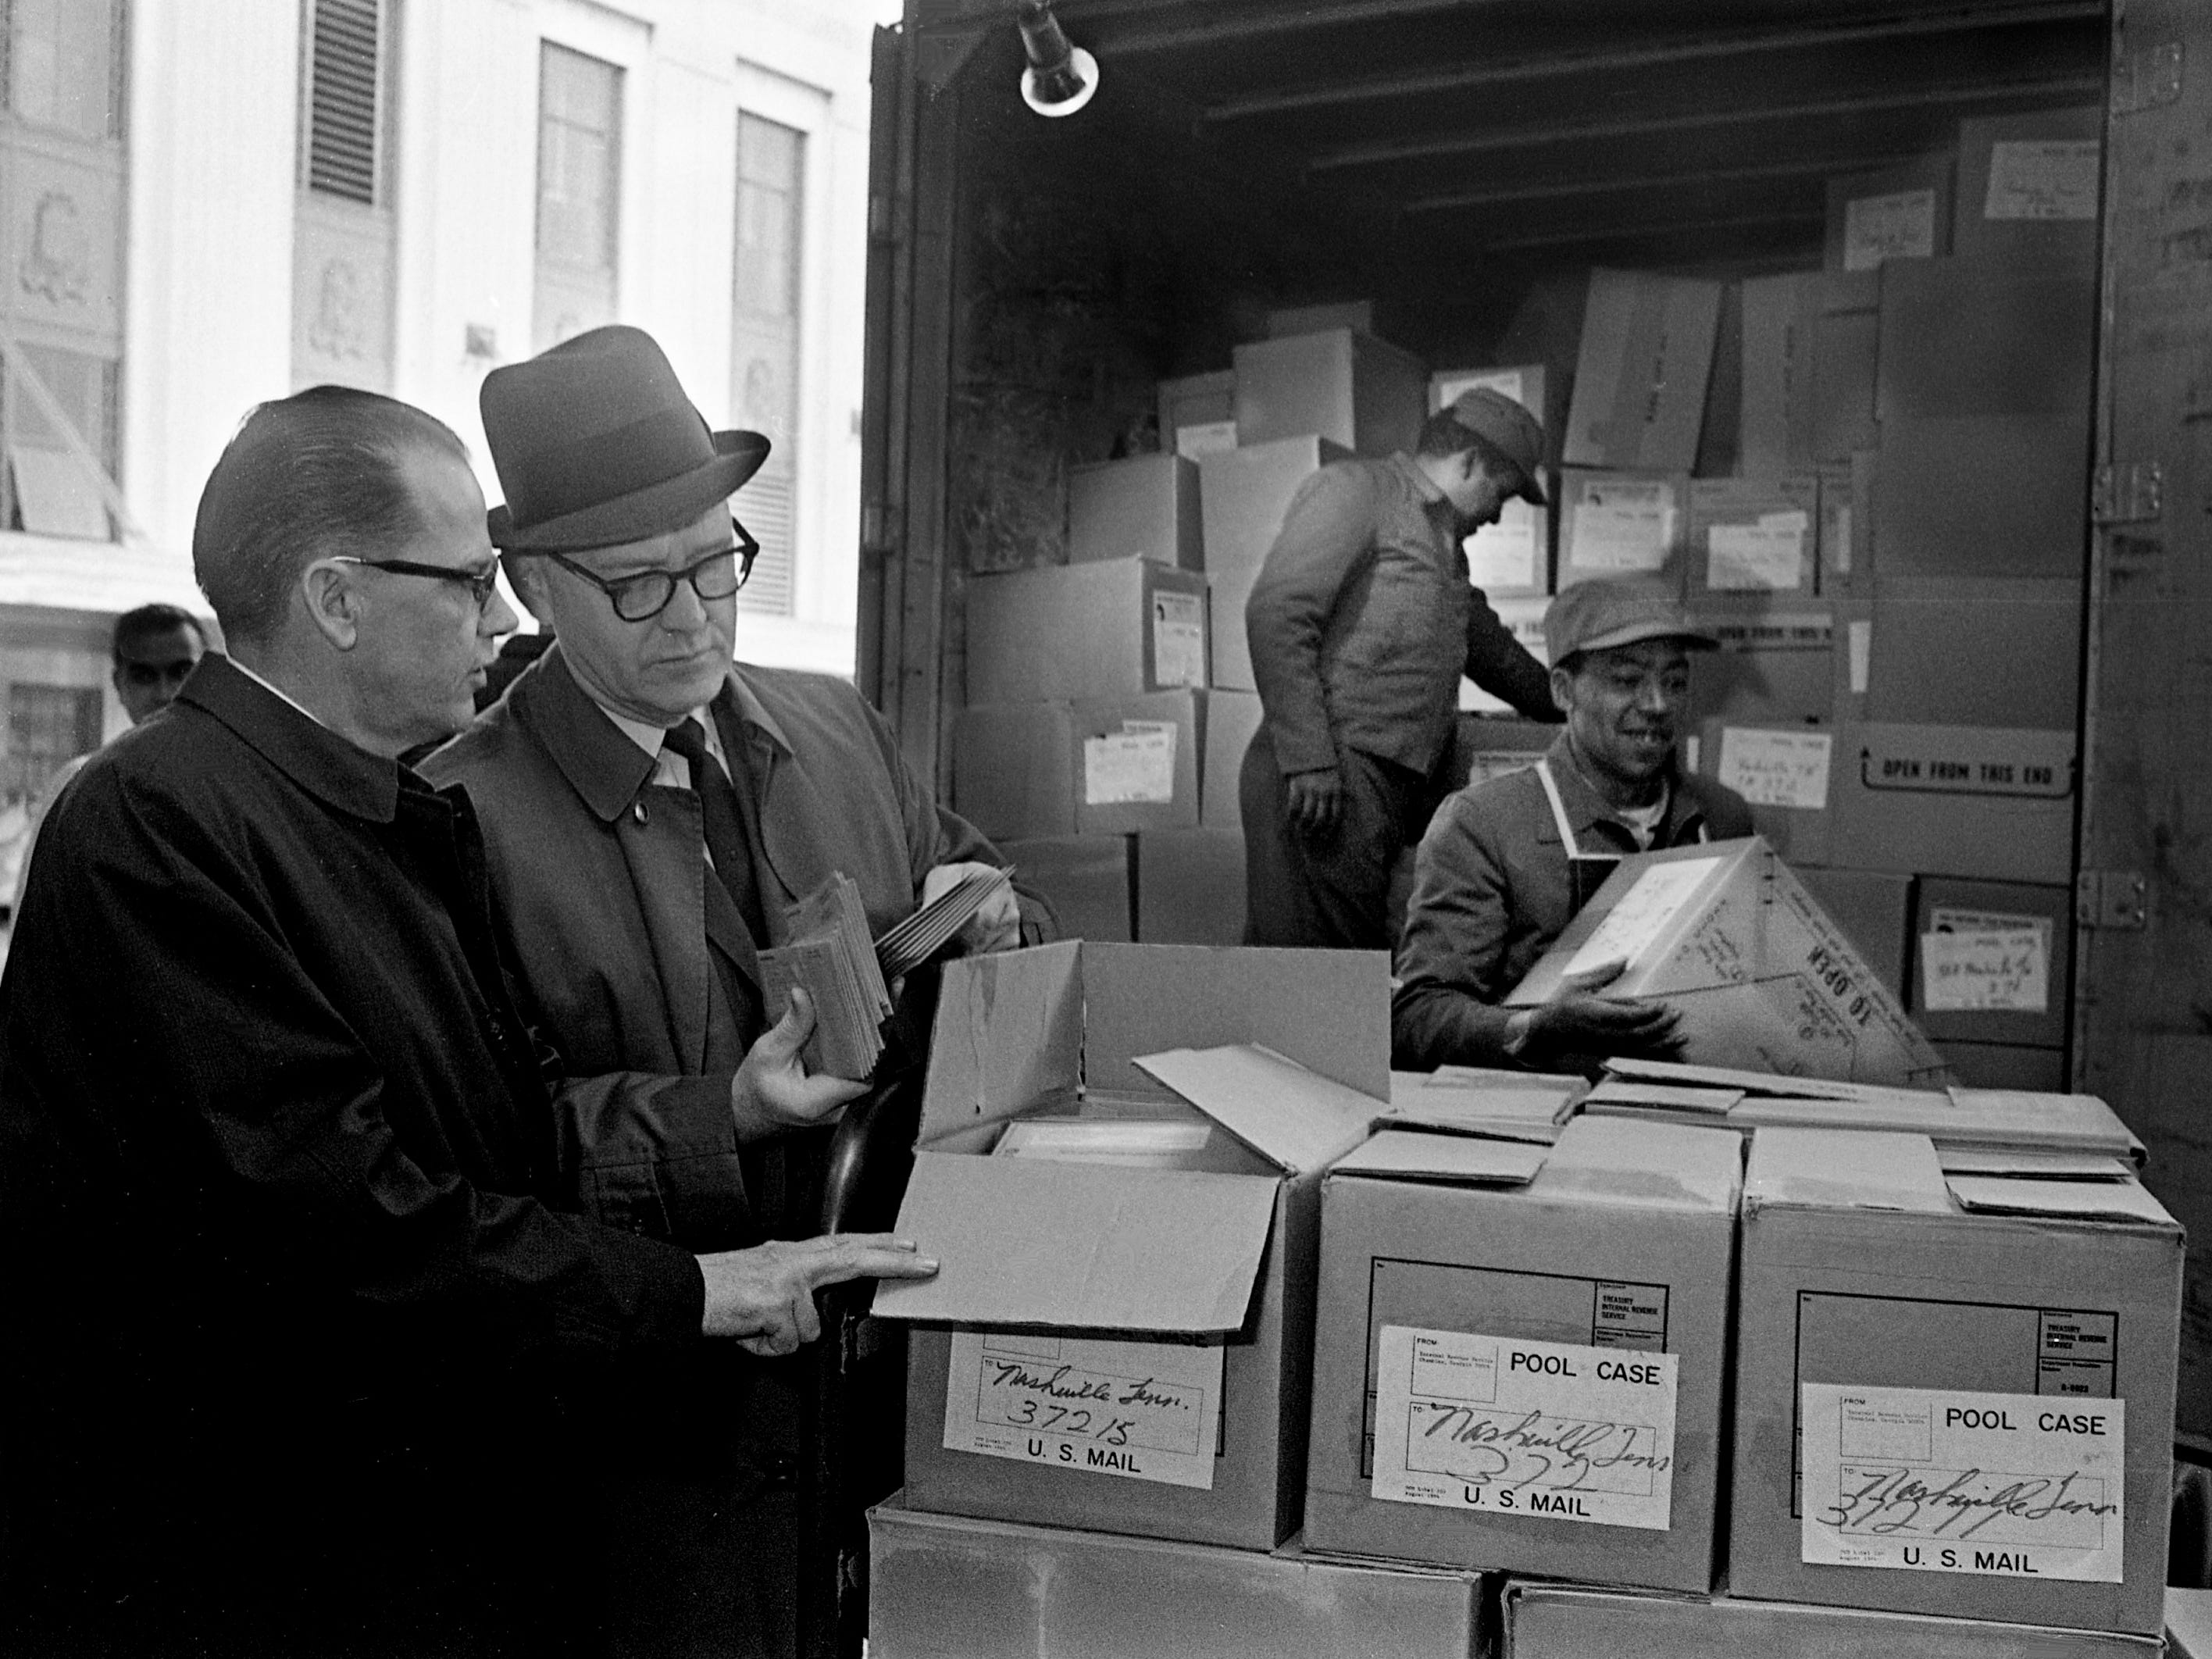 Assistant Postmaster Frank Jarrell, left, and IRS district director James A. O'Hara examine boxed 1968 income tax forms being unloaded by workers at the downtown U.S. post office Dec. 27, 1968. The IRS will send out 1.3 million forms to residents of Tennessee.